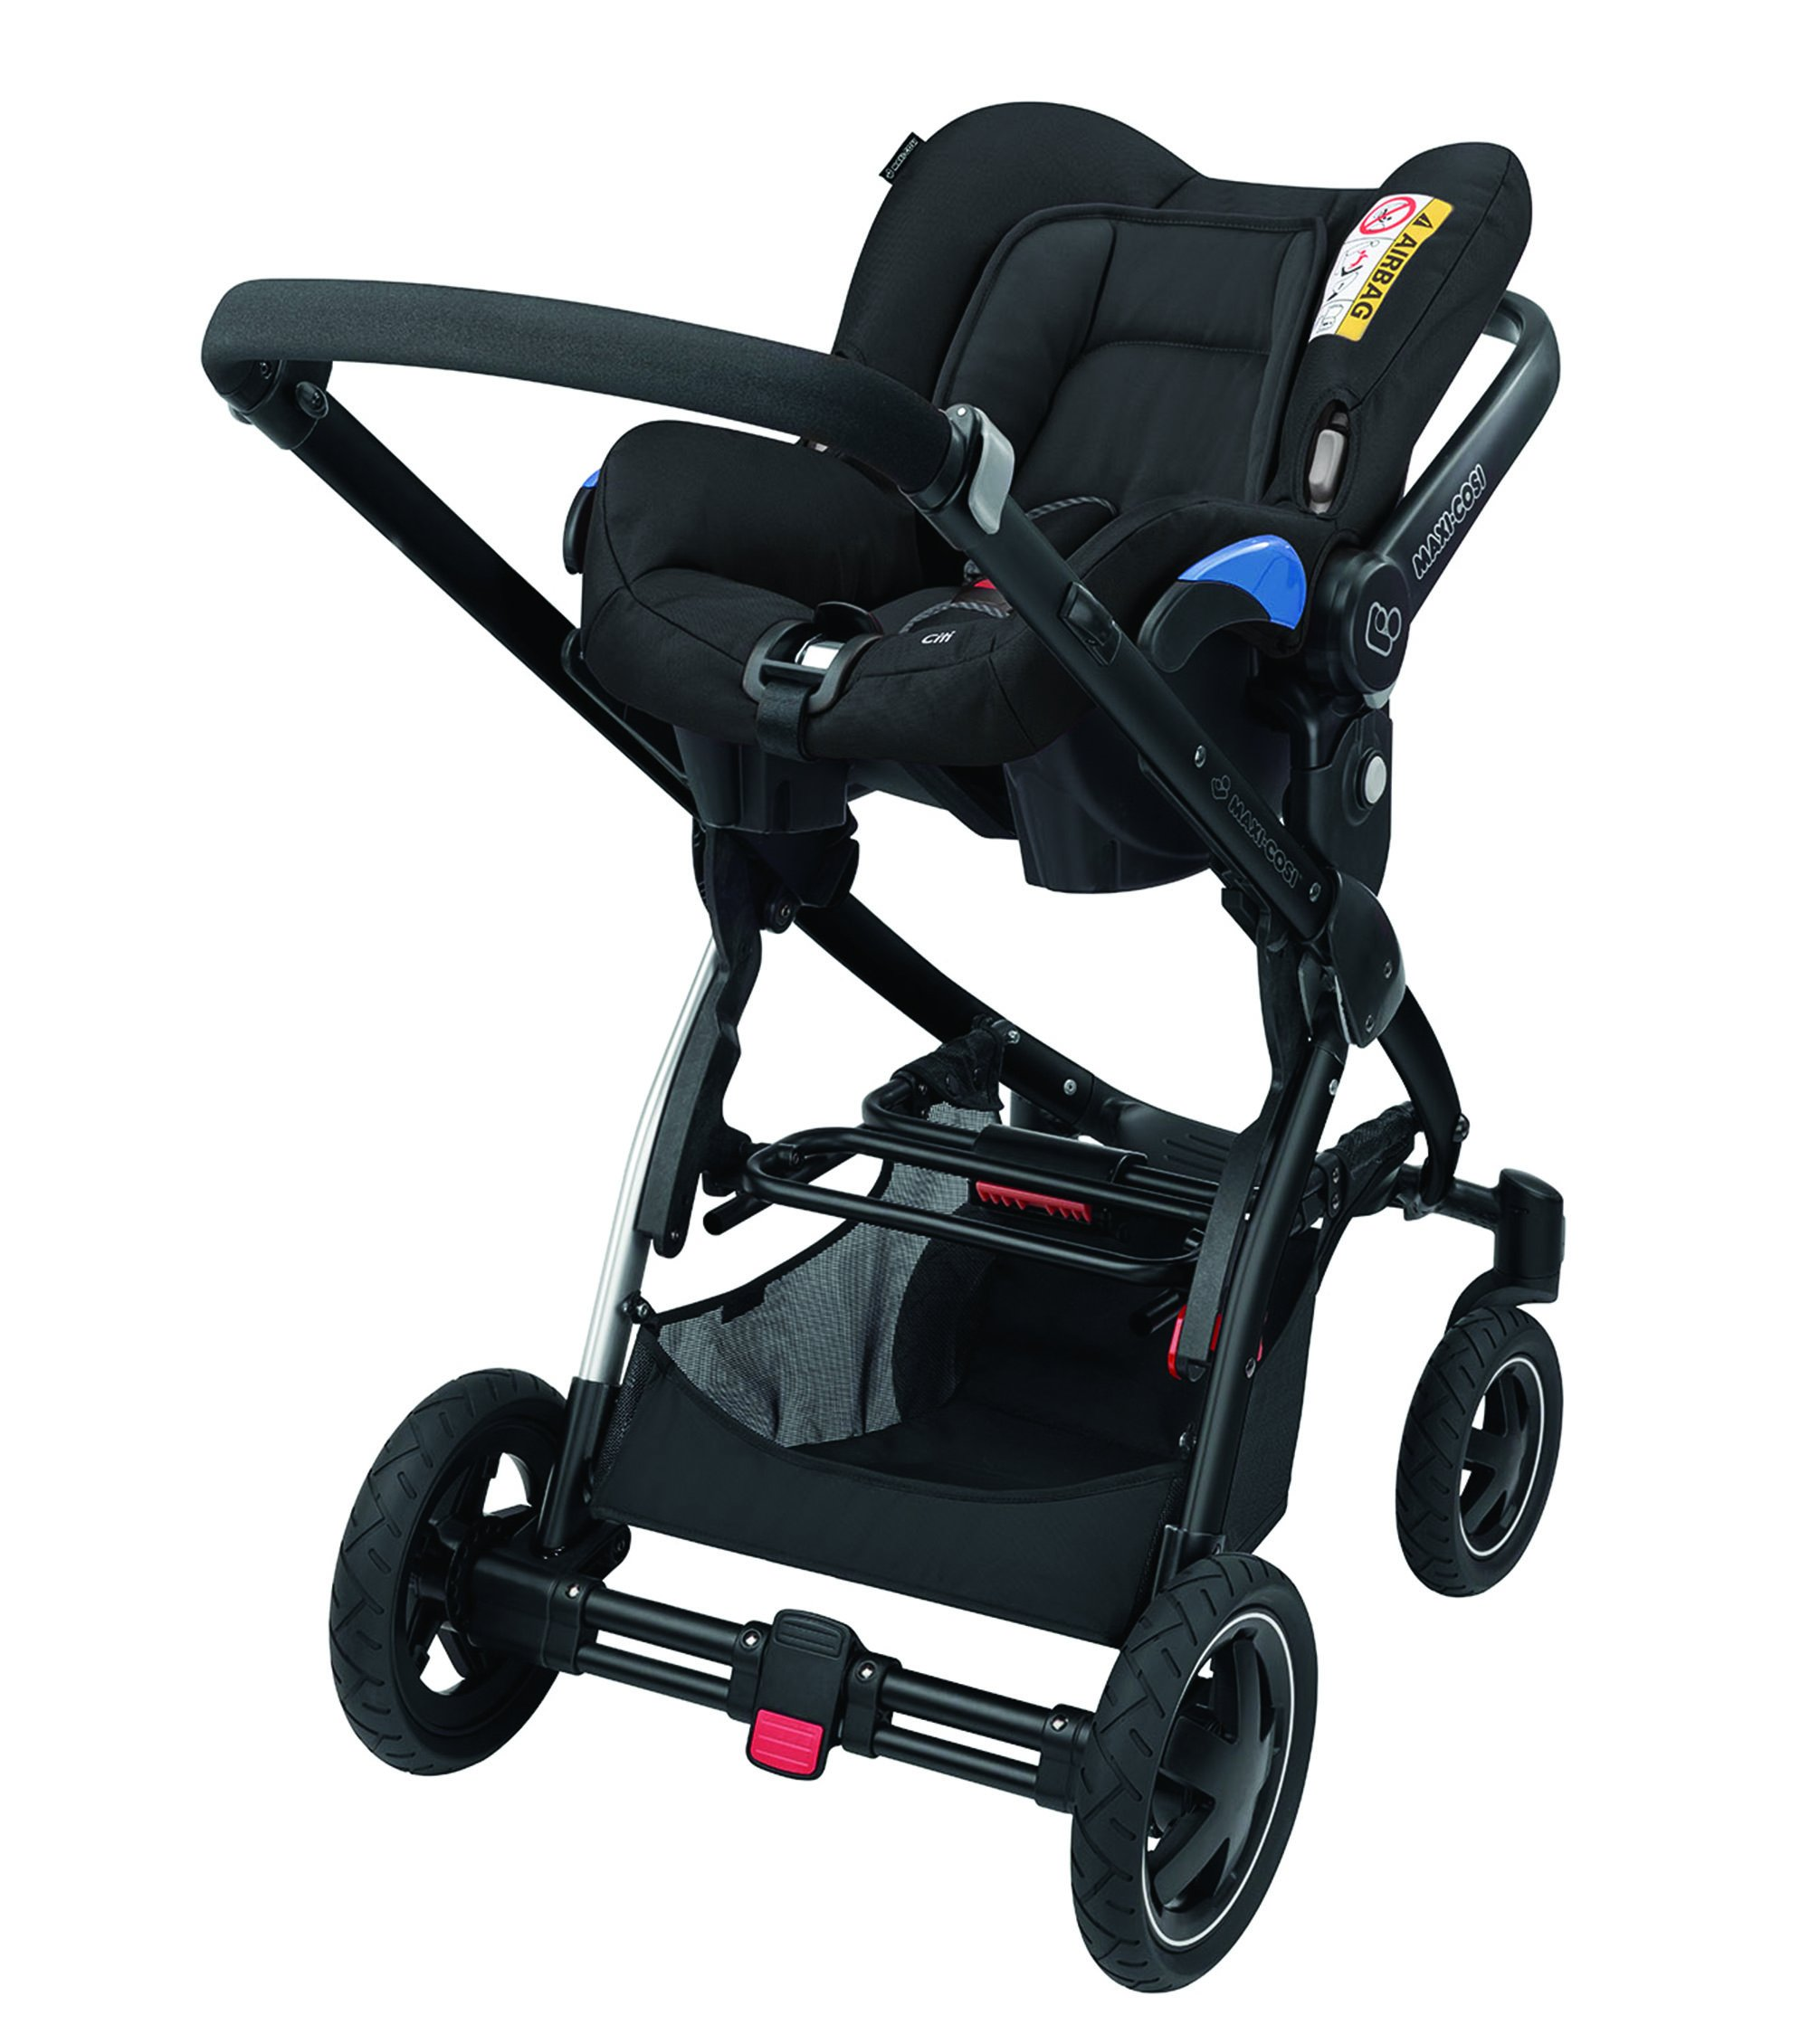 Maxi-Cosi Kinderautositz Citi Black Raven Maxi-Cosi Side protection system, guarantees optimal protection in the event of a side impact Lightweight, light weight and ergonomically shaped safety bar for use as carrying handle Practical travel system 11